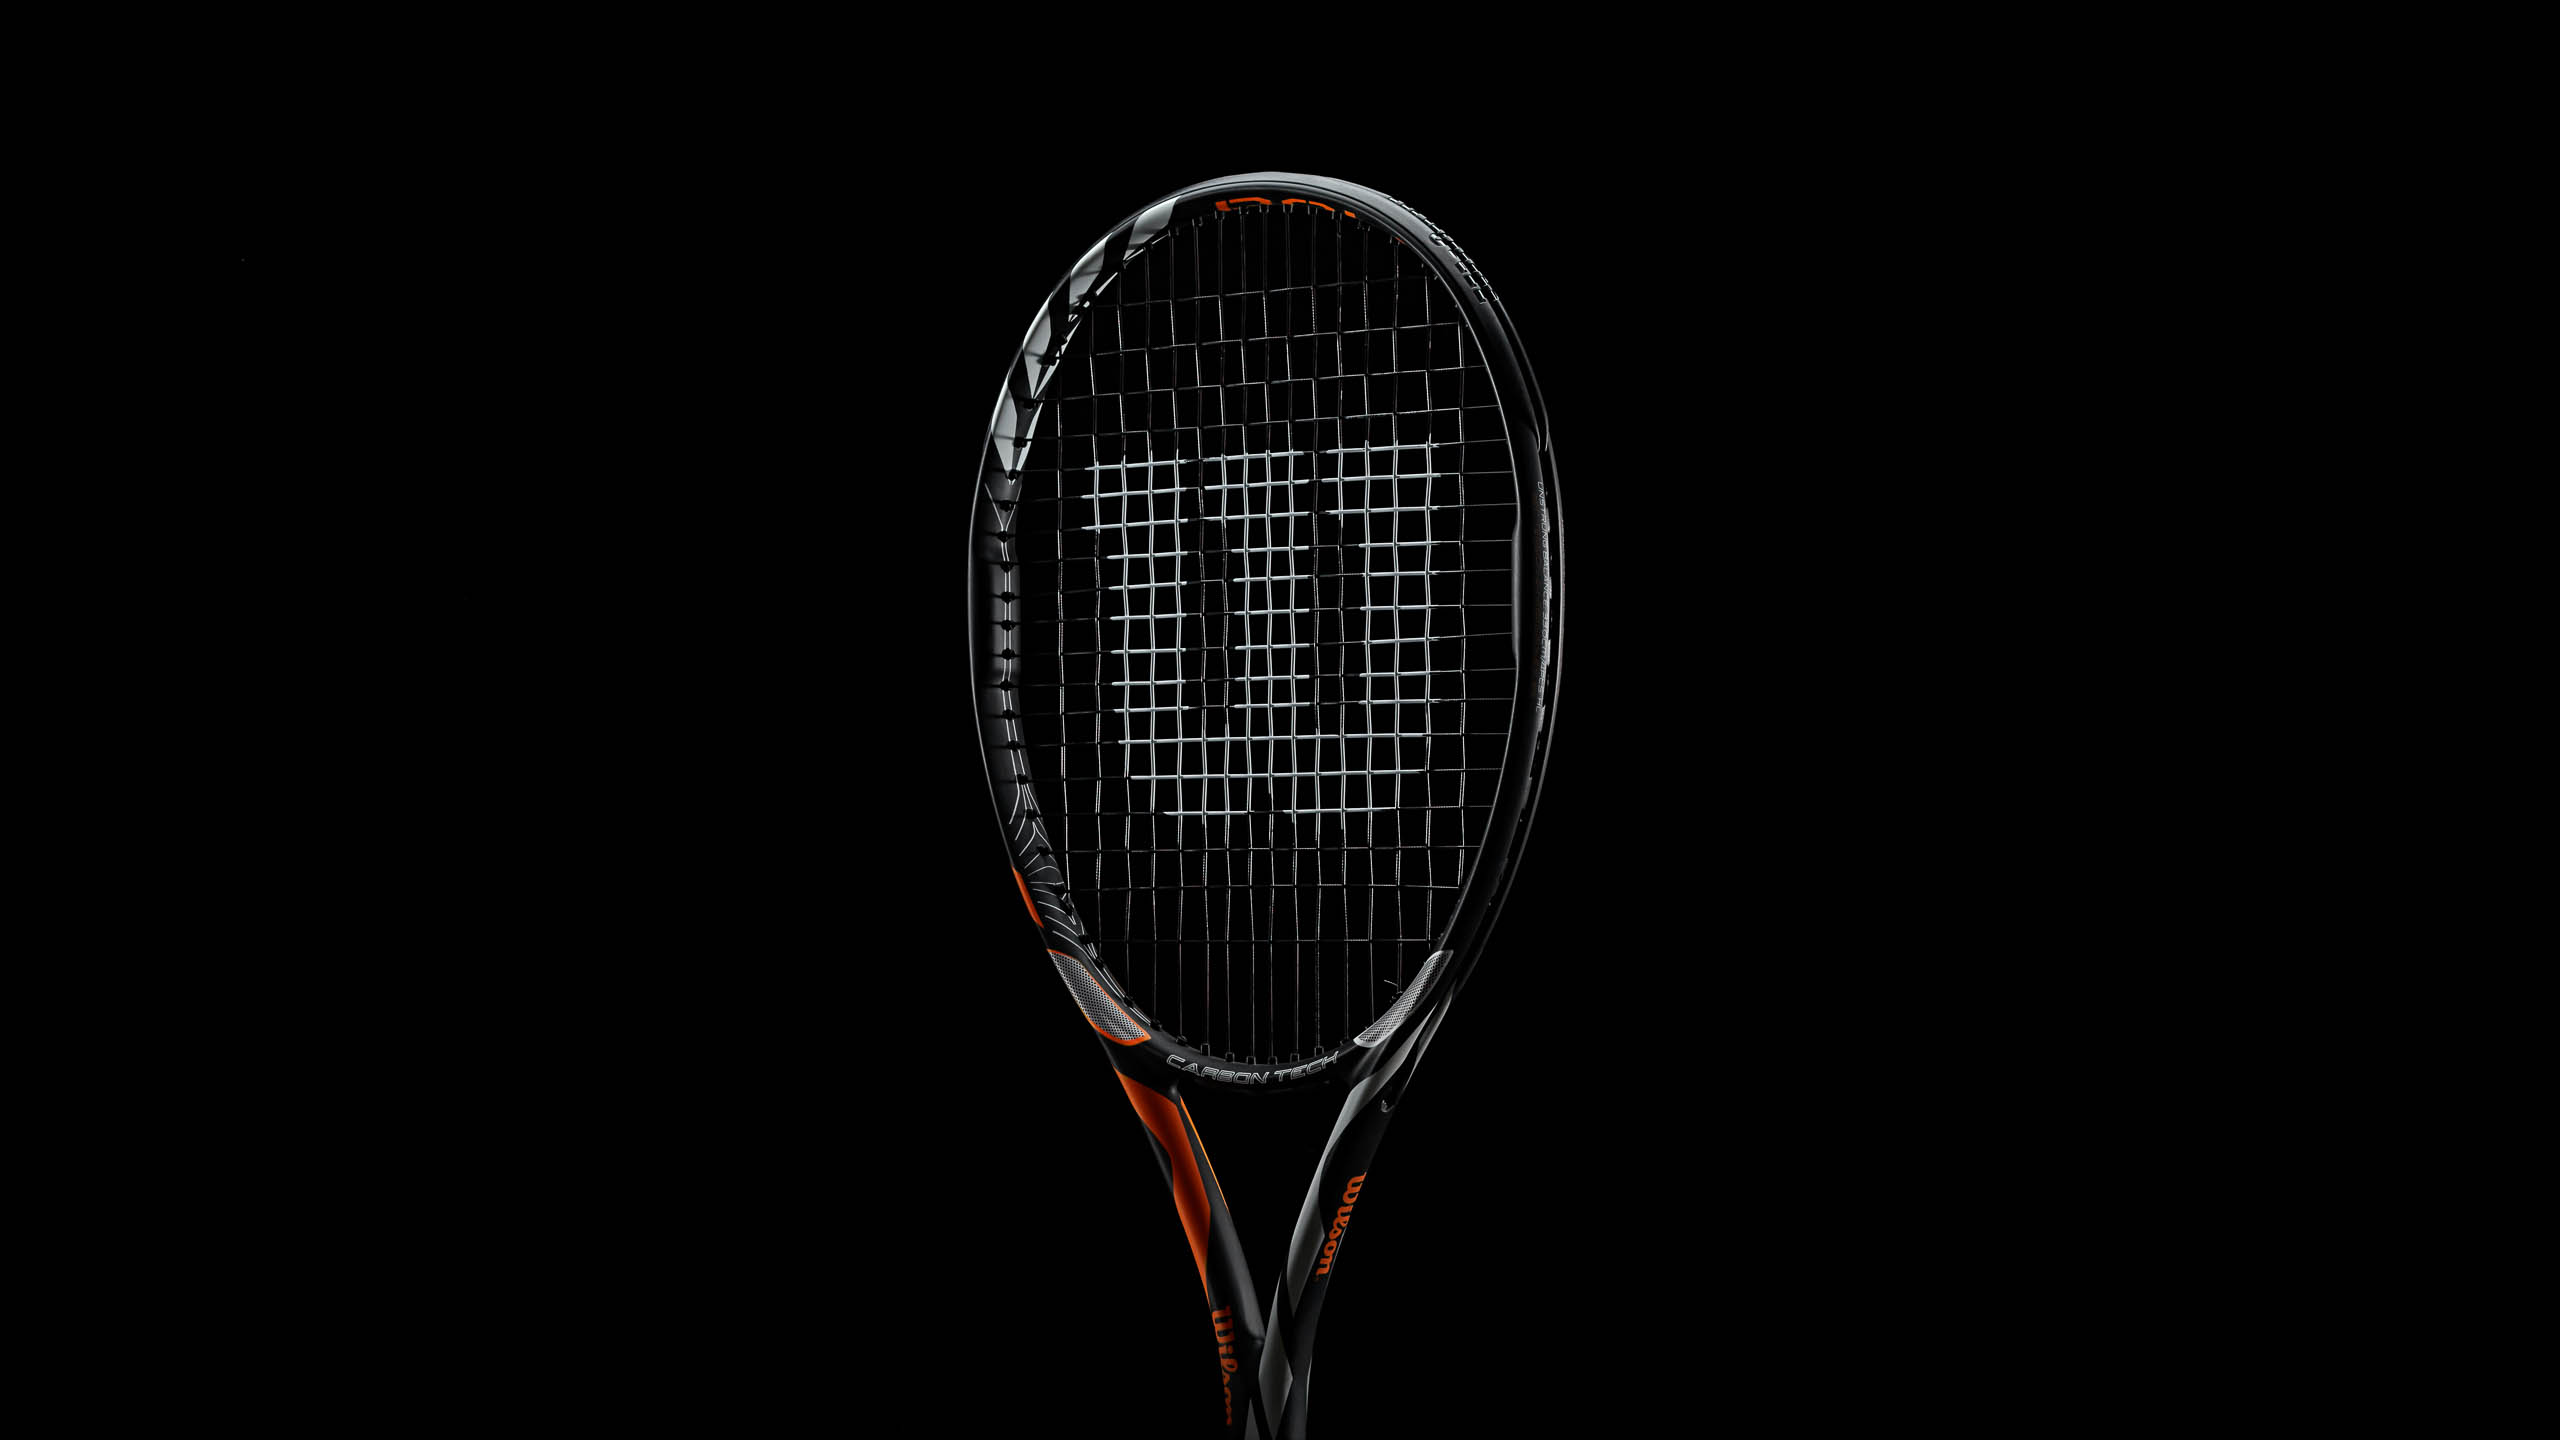 Wilson Carbon Tech tennis racquet